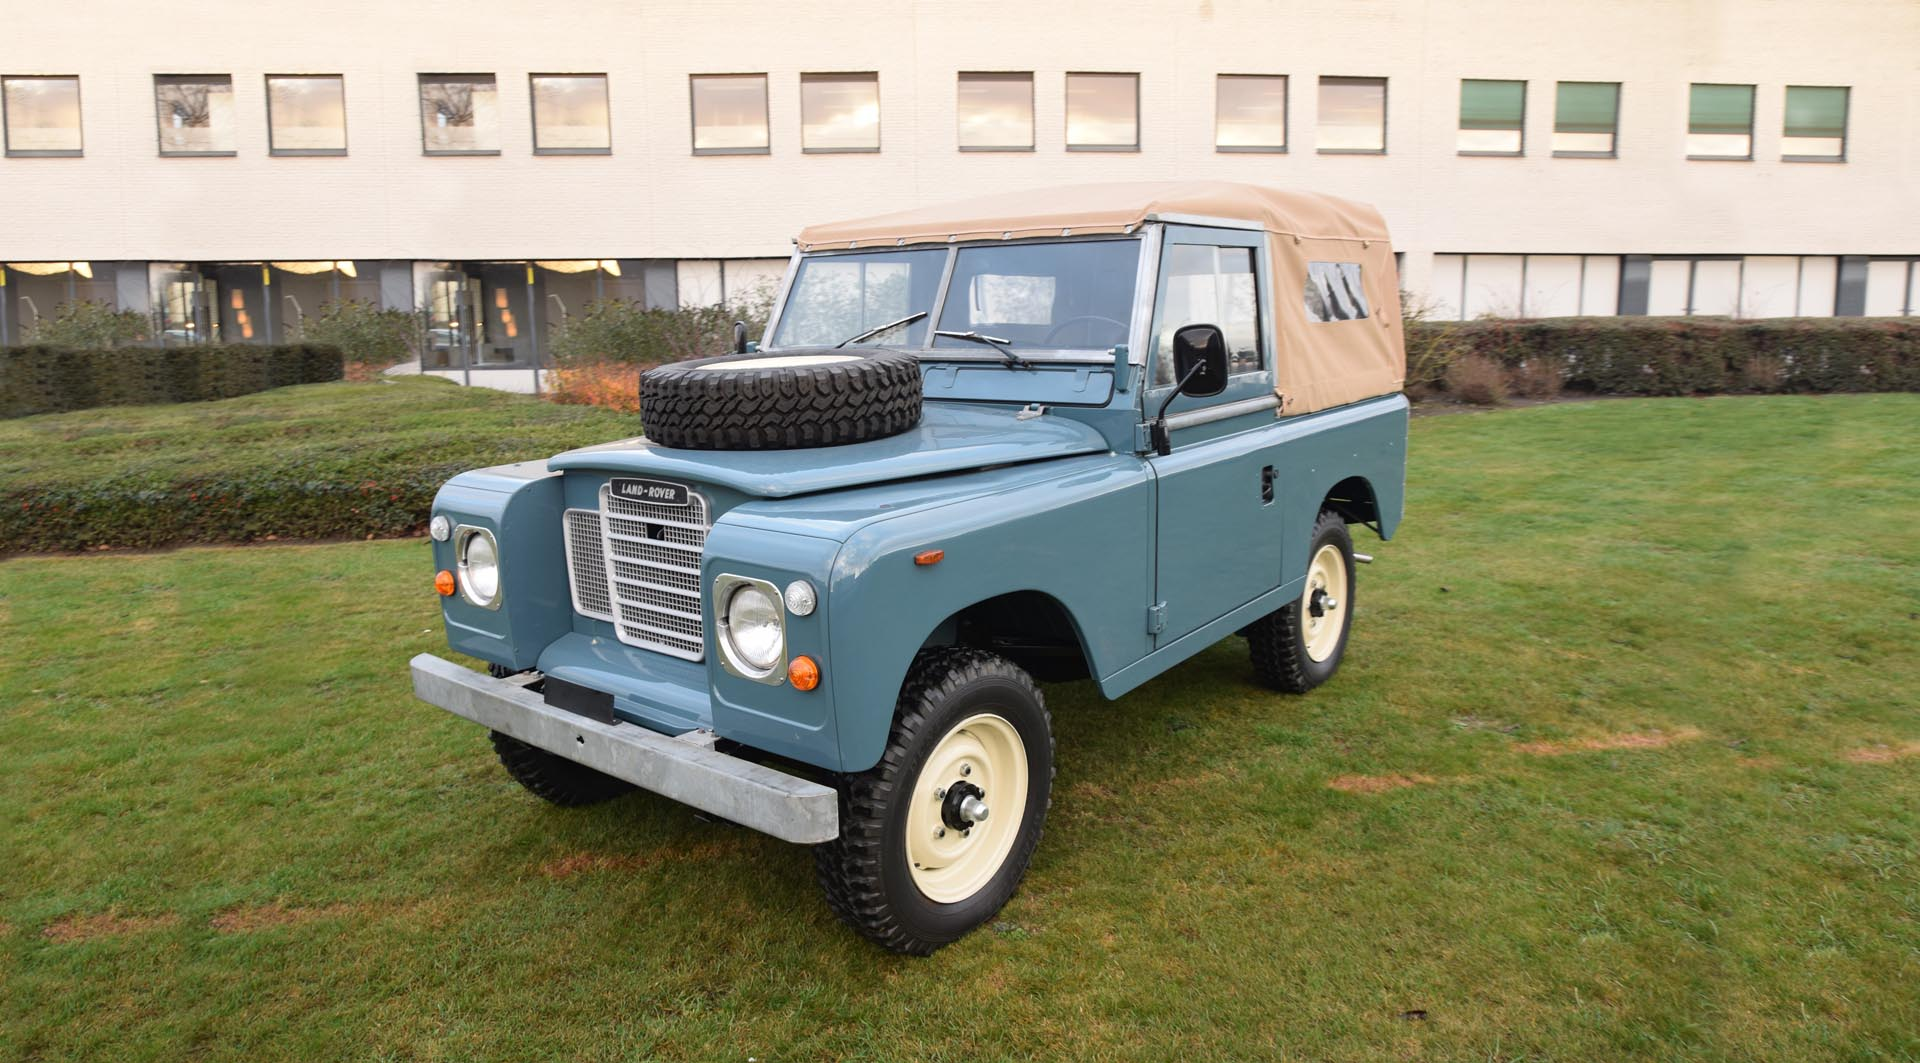 1981 Land Rover Series III 88 SWB